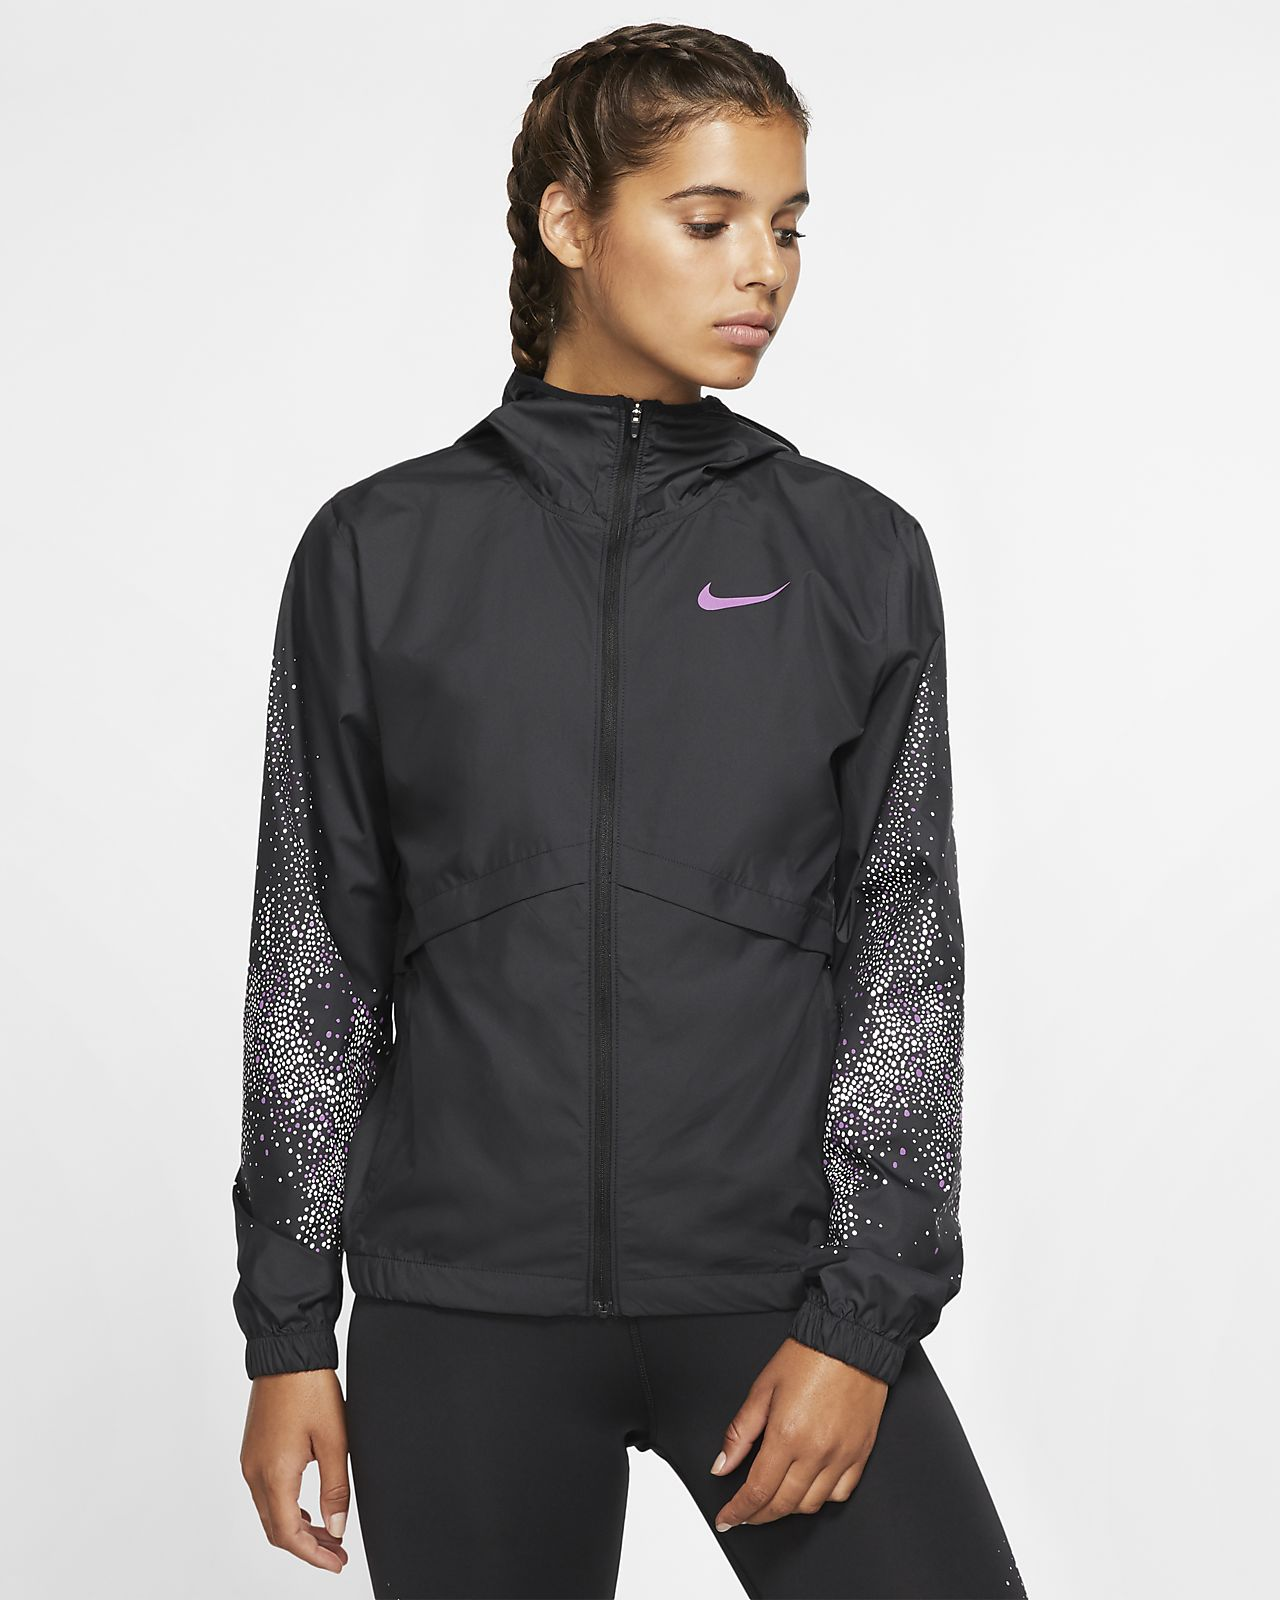 Nike Essential Women's Full-Zip Running Jacket